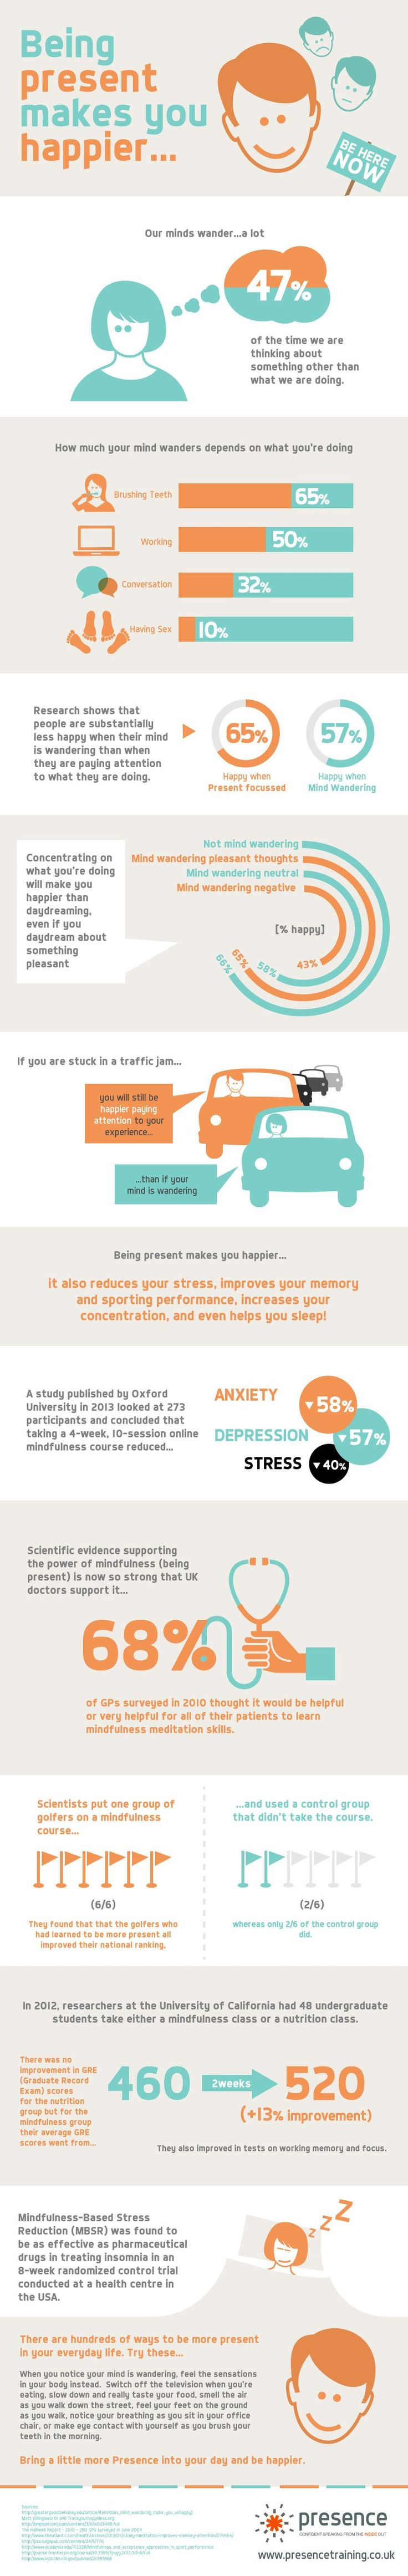 Being present makes you happier (infographic) check out how being present can change your life for the better.